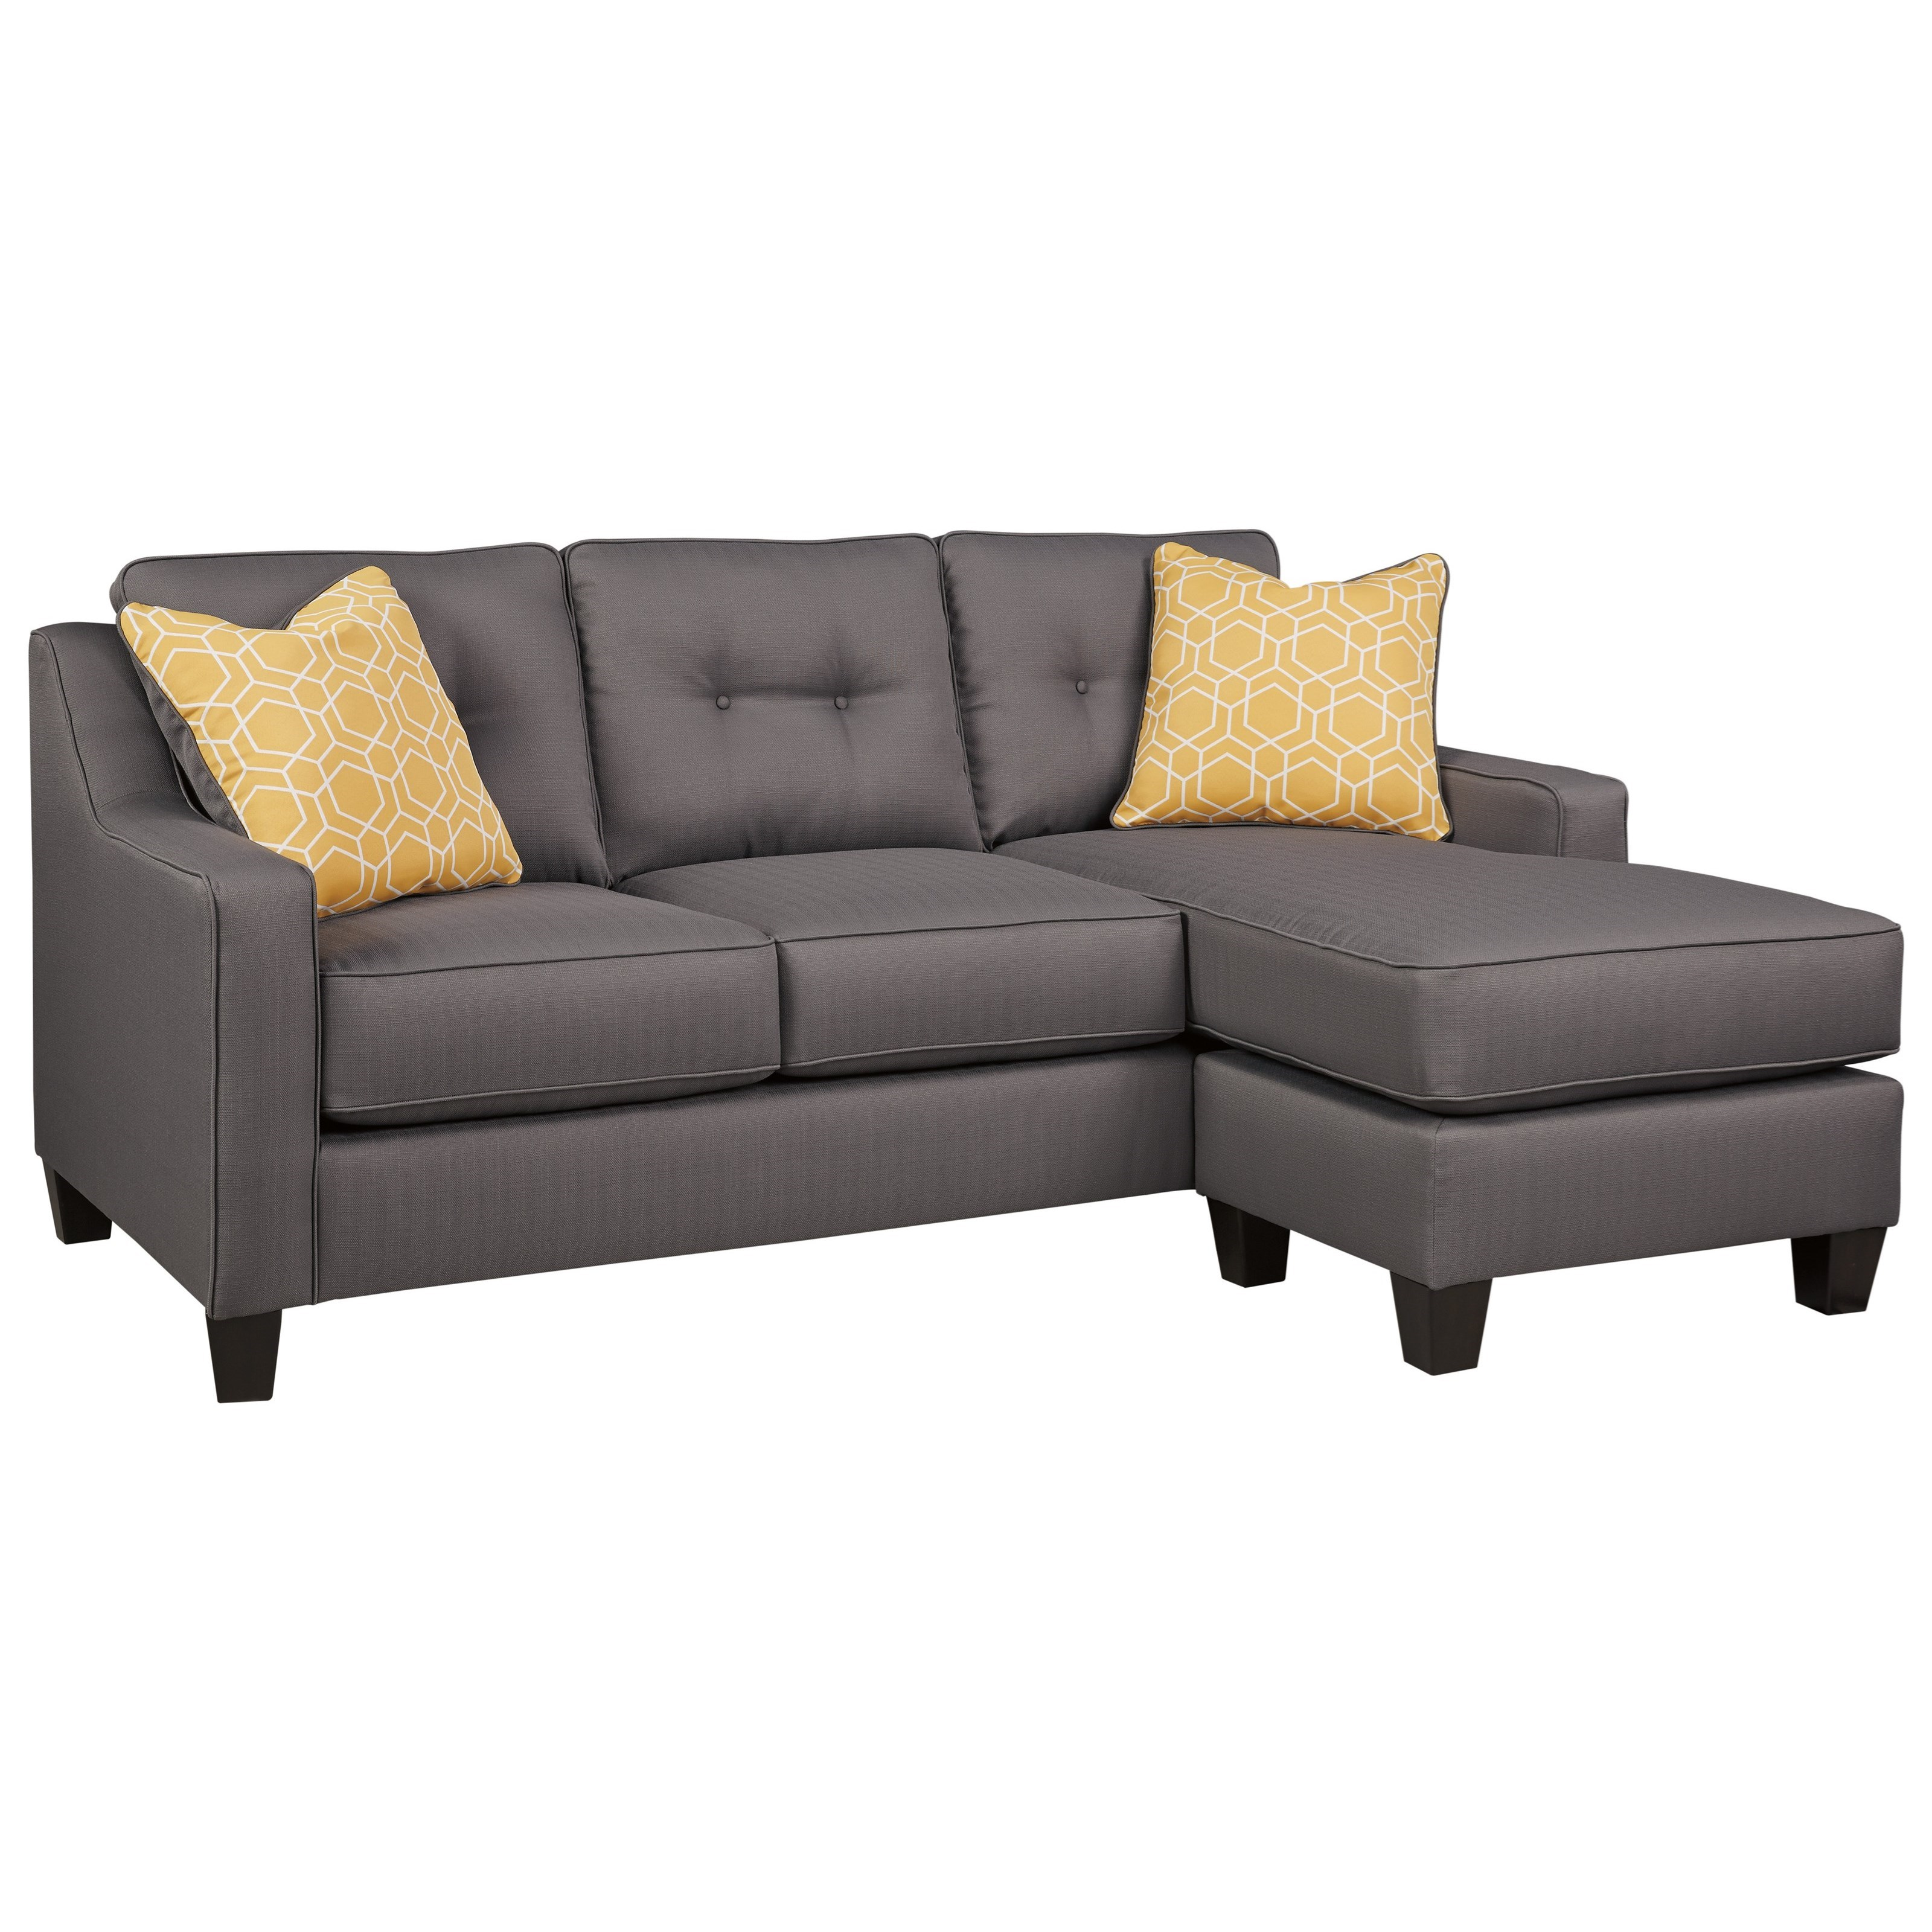 Benchcraft Aldie Nuvella Queen Sofa Chaise Sleeper - Item Number 6870268  sc 1 st  Wayside Furniture : chaise sleeper chair - Sectionals, Sofas & Couches